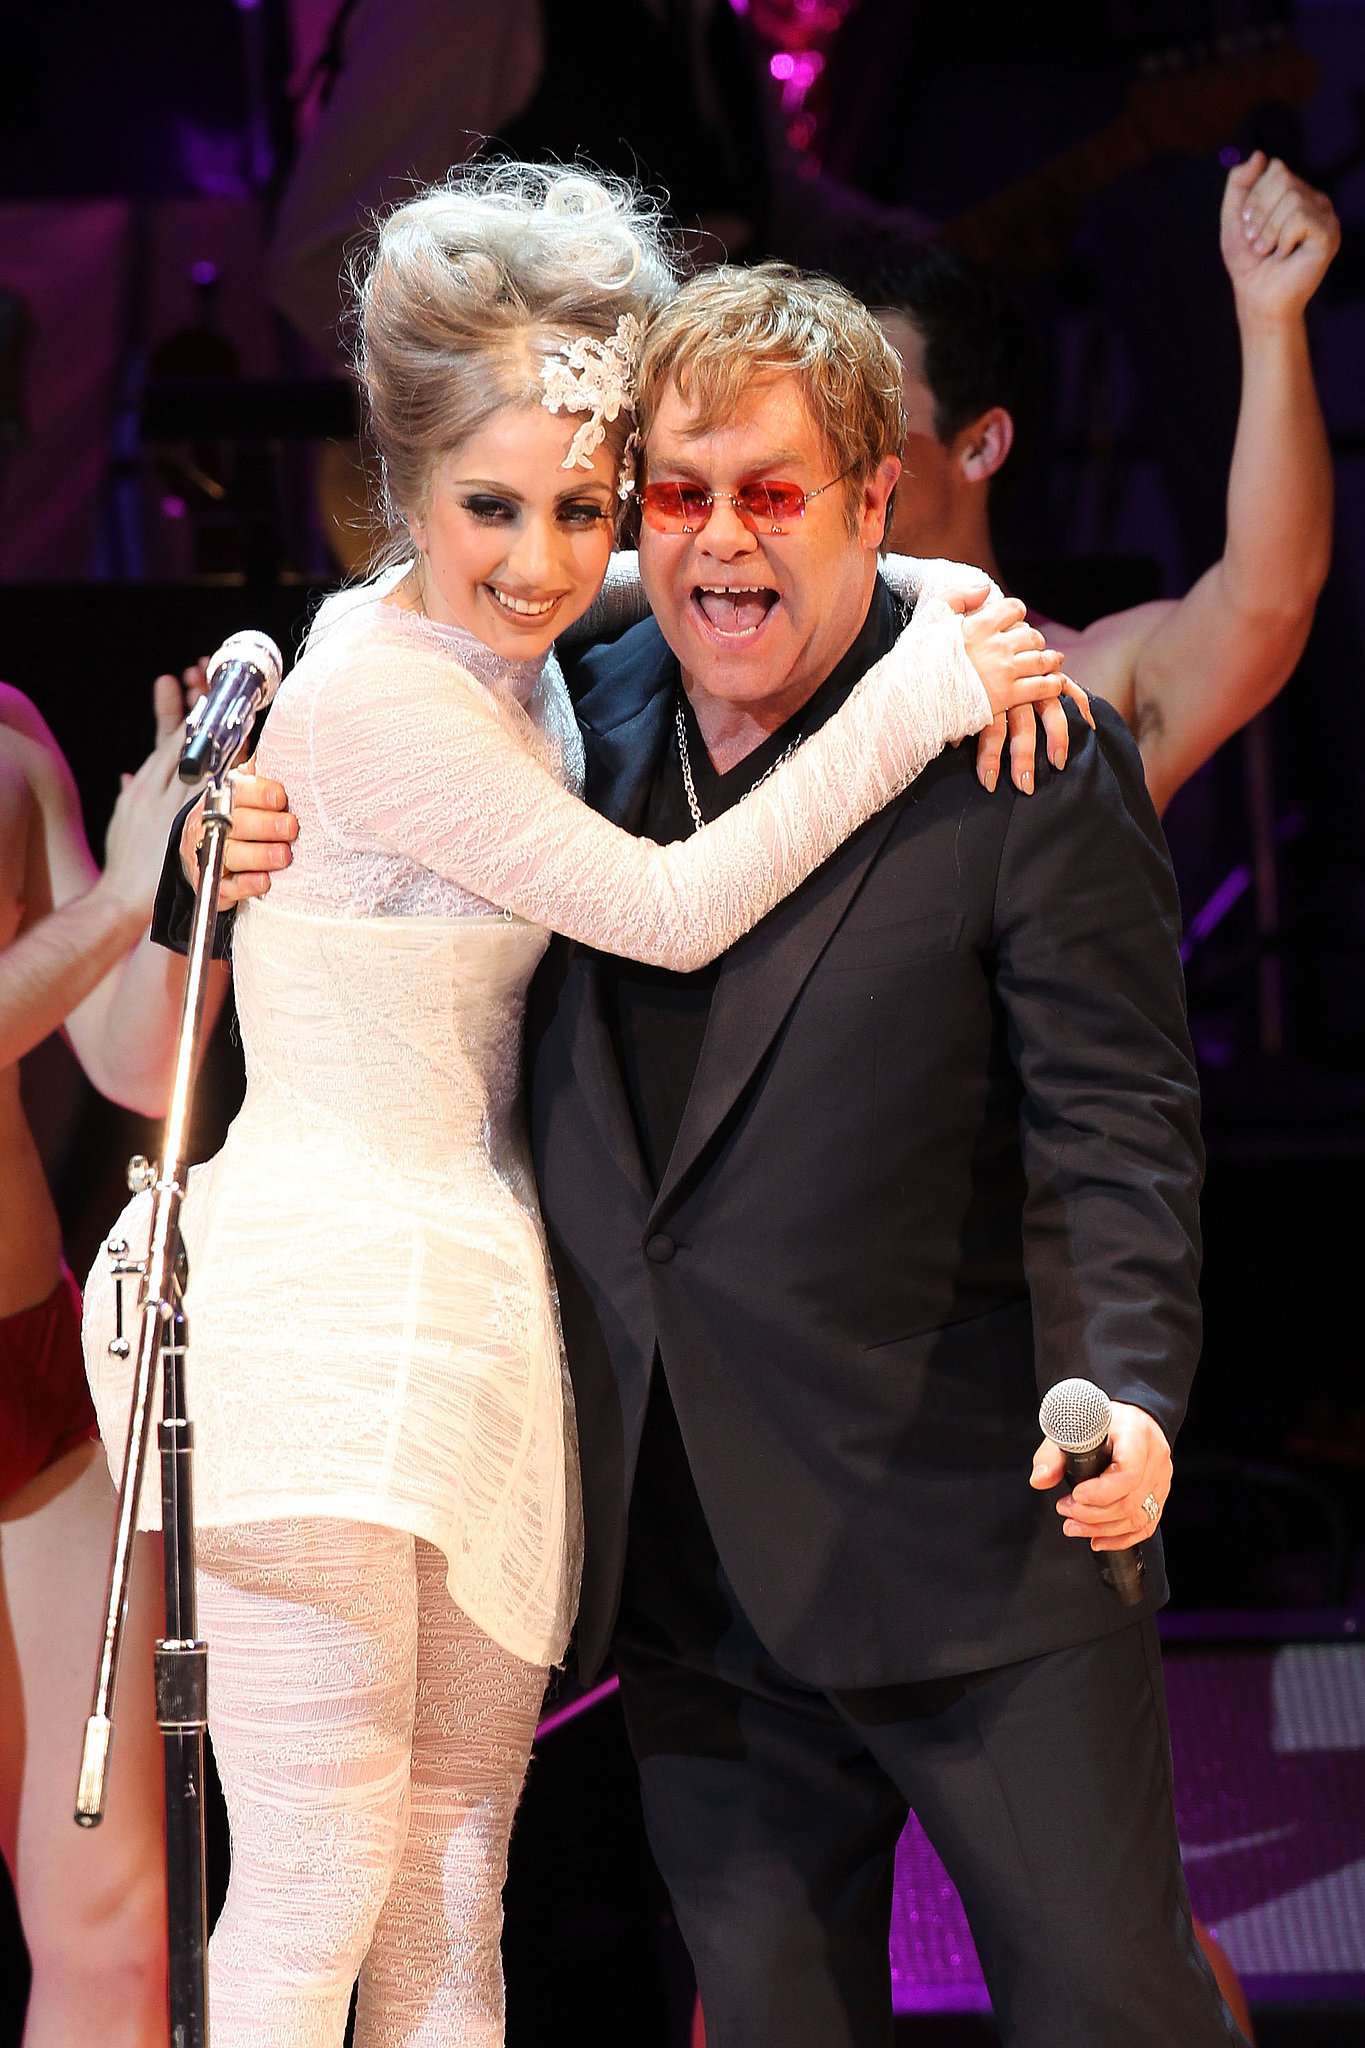 "When Elton John and his husband, David Furnish, welcomed their son Zachary in 2011, they asked Lady Gaga to act as his godmother. The couple confirmed the news in an interview with Barbara Walters, saying, ""When you get to the real person under there, there's a real simple person under there who loves her parents."" Gaga has clearly done a good job with the role, as Elton and David gave her the t"